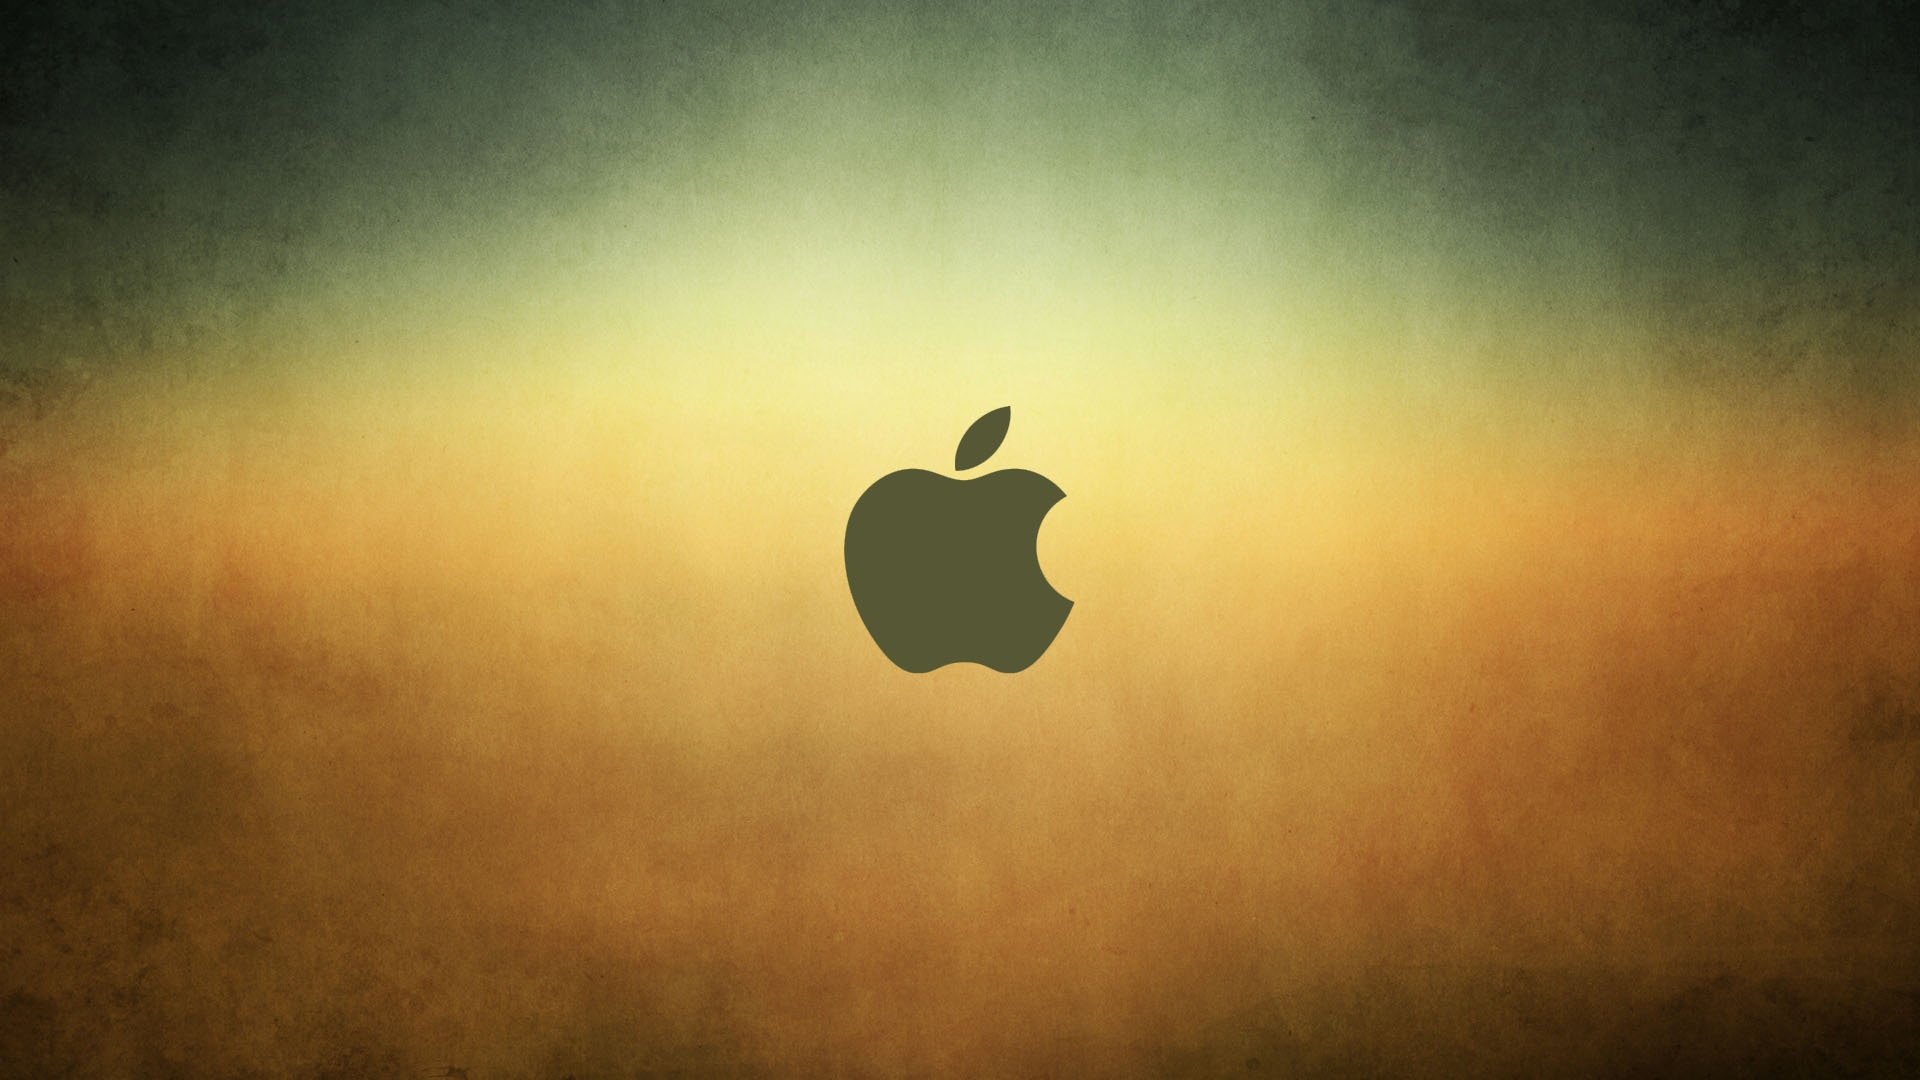 Apple Logo Hd Wallpapers For Iphone 1920 1080 Apple Logo: Hd Mac Wallpapers 1080p